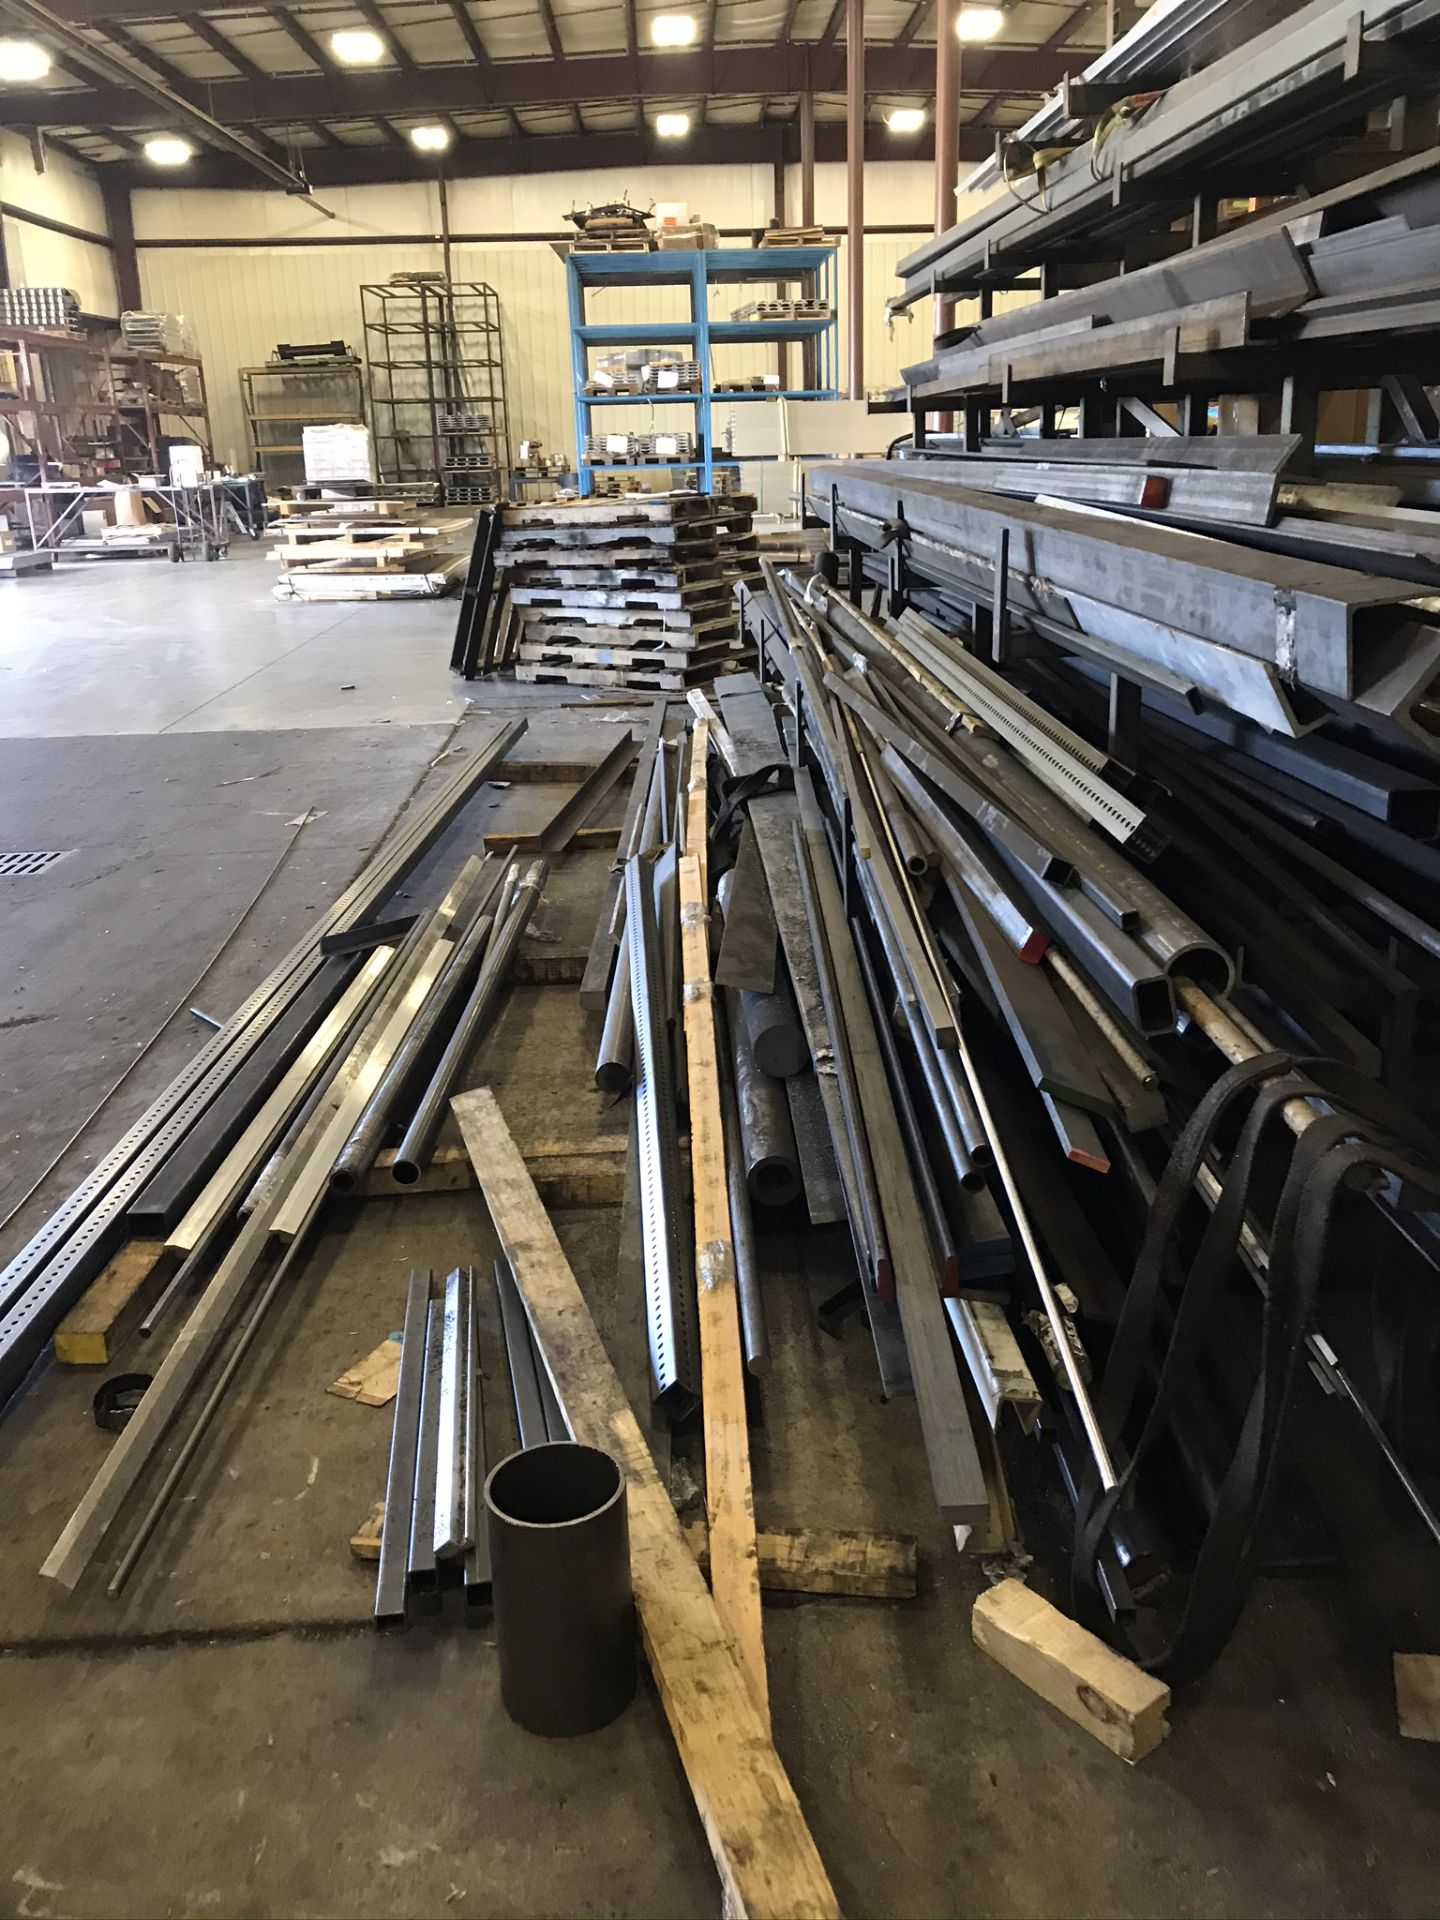 Two Sided Steel Rack Complete with Structural Steel, Bar Stock, Aluminum, Etc. - Image 2 of 6